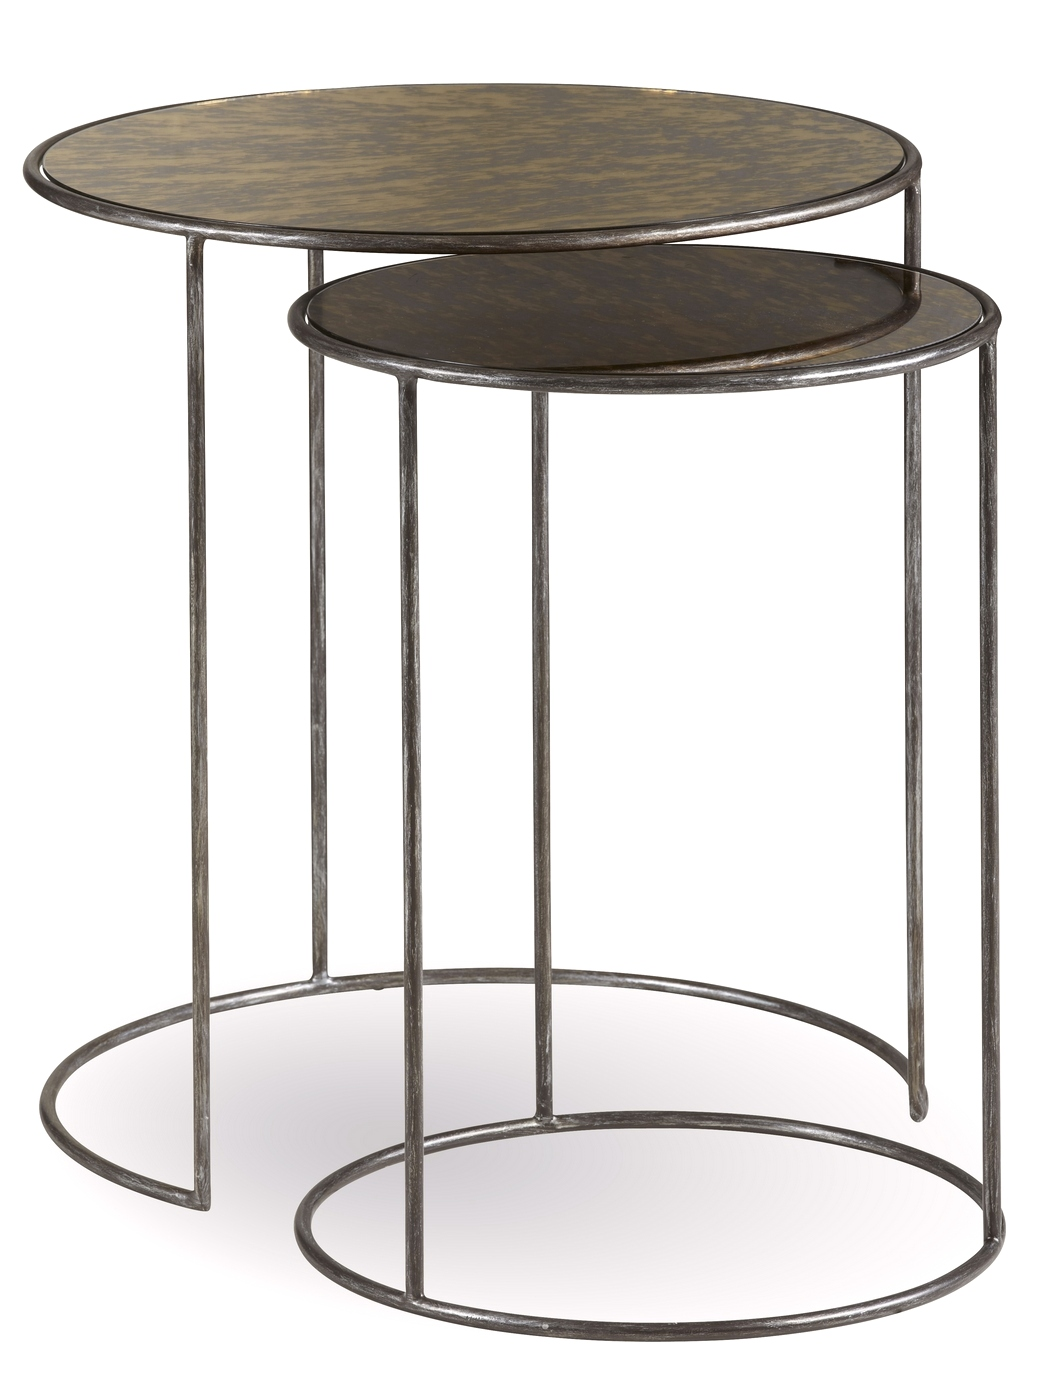 Williamsburg antique pot metal nesting tables with glass top for Glass top nesting tables